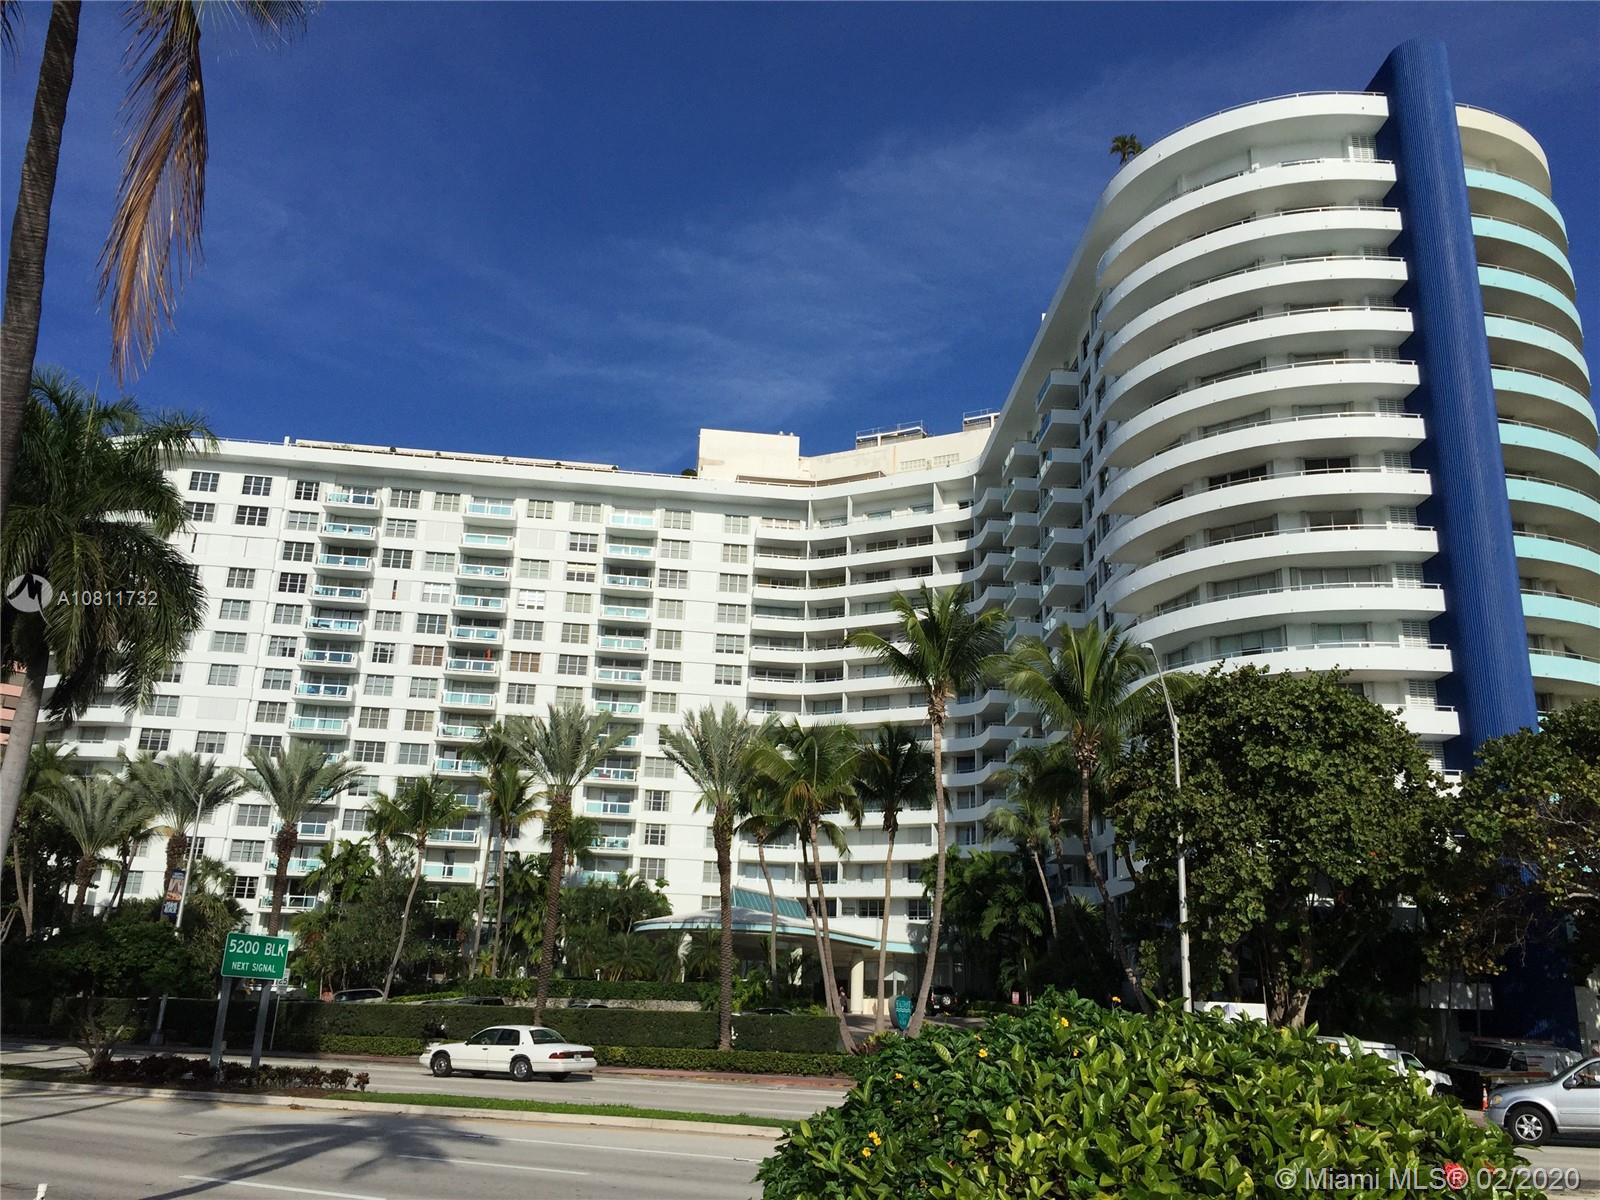 5161 Collins Ave # 207, Miami Beach, Florida 33140, 2 Bedrooms Bedrooms, ,2 BathroomsBathrooms,Residential Lease,For Rent,5161 Collins Ave # 207,A10811732